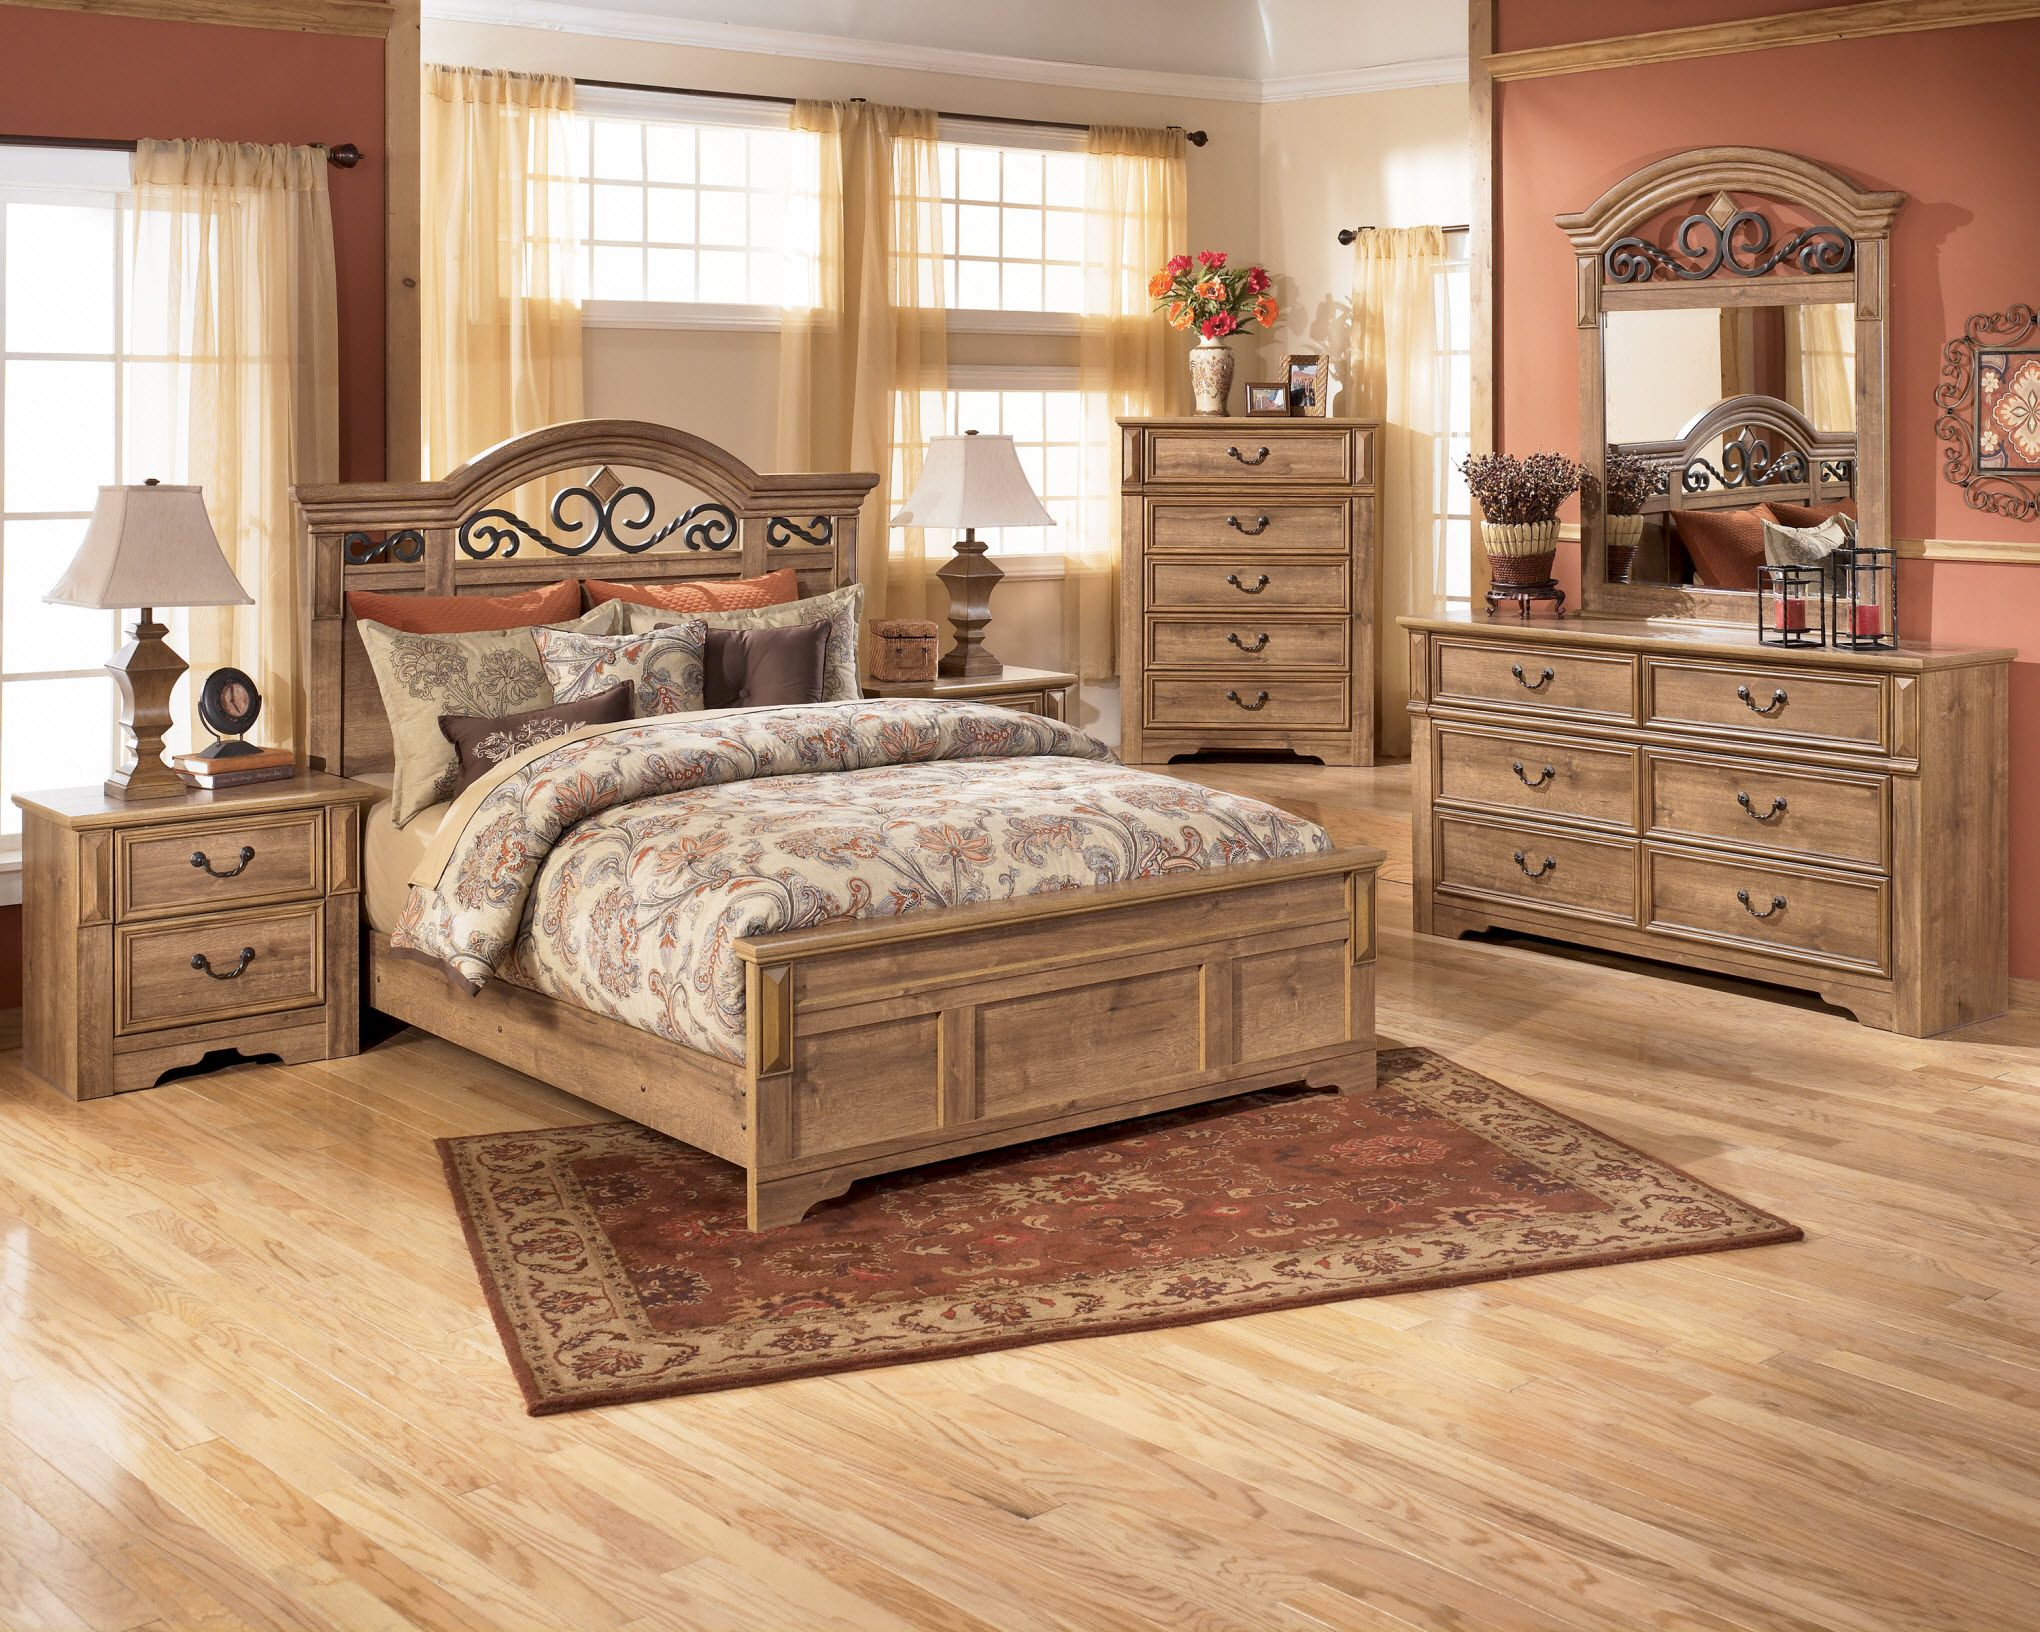 Ashley Bedroom Furniture Collections  As_B170 B170 Whimbrel Forge Adorable Signature Design Bedroom Furniture Design Inspiration